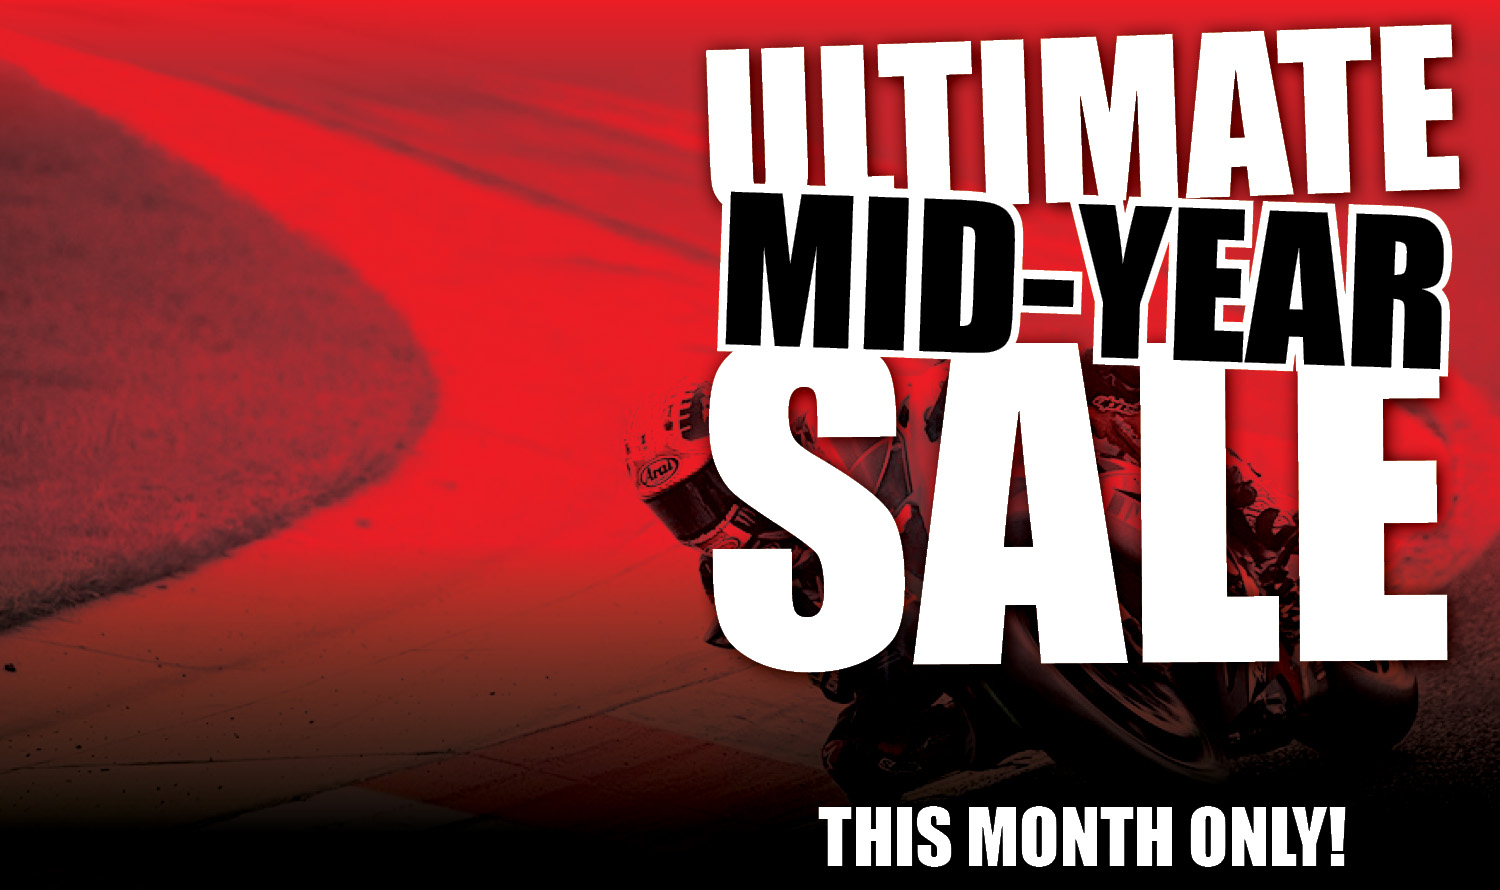 UltimateMotorbikes-HPB-UltimateMidYearSale-Jun19-MR